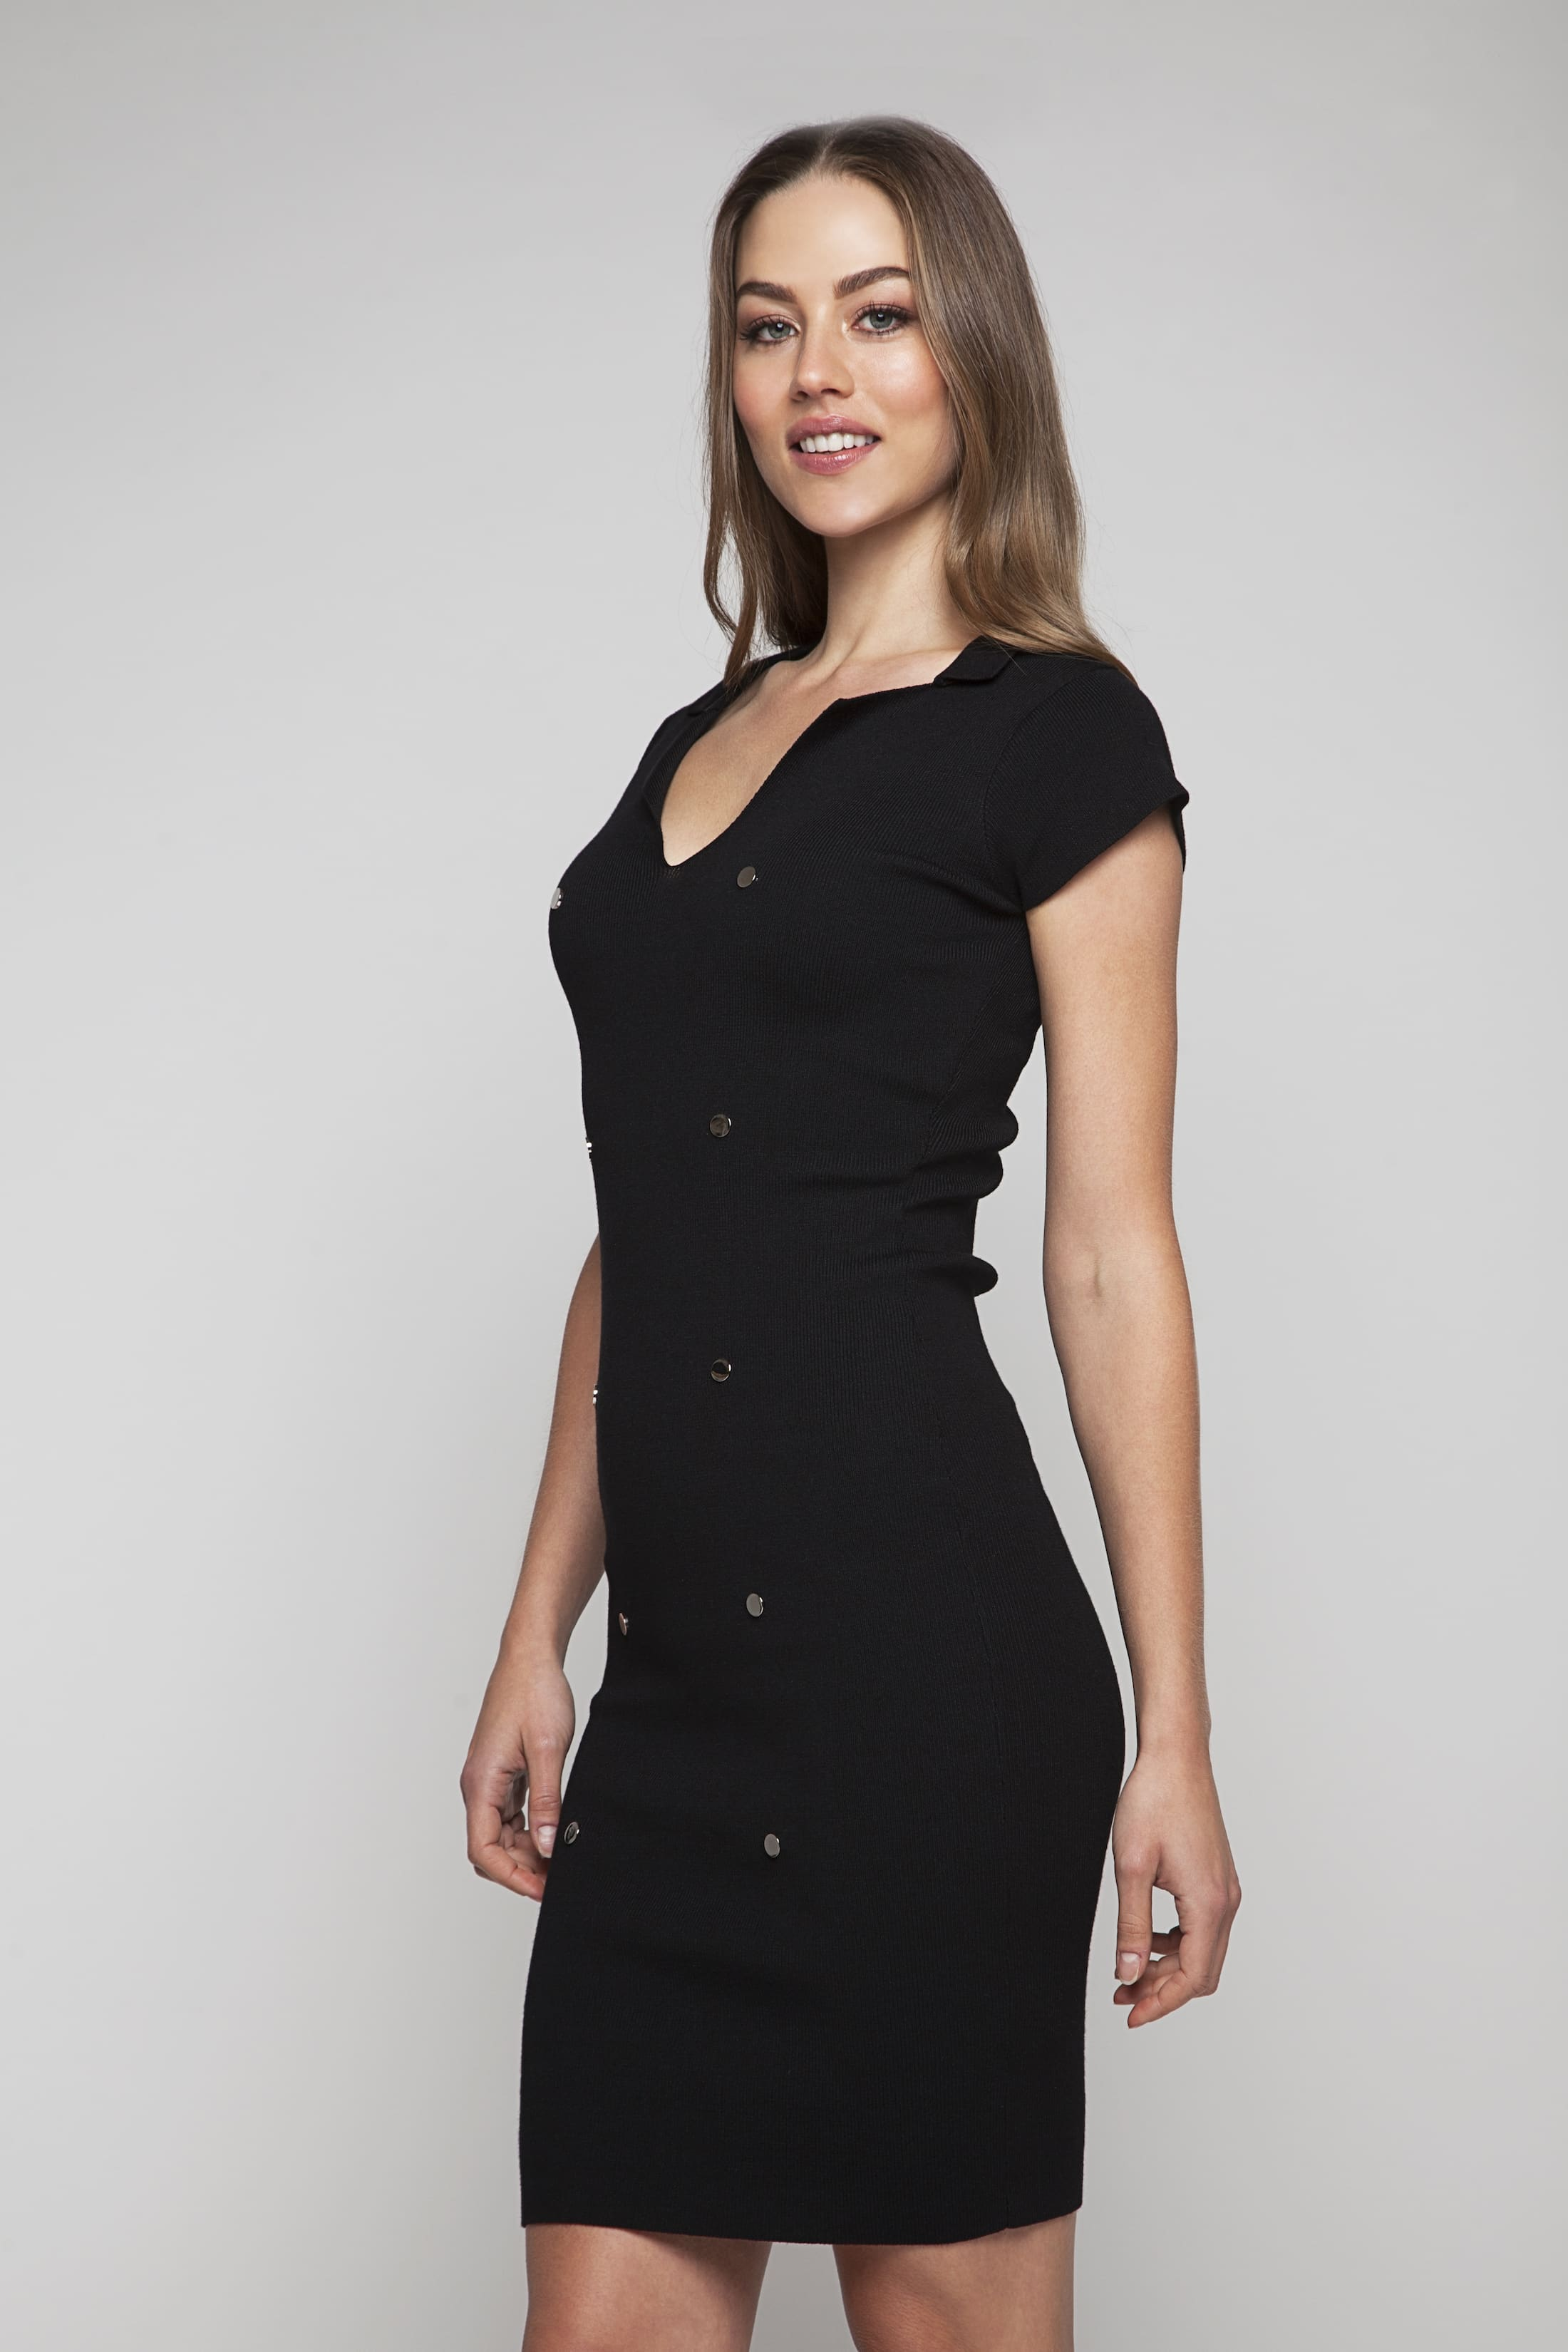 Black knitted dress with short sleeves